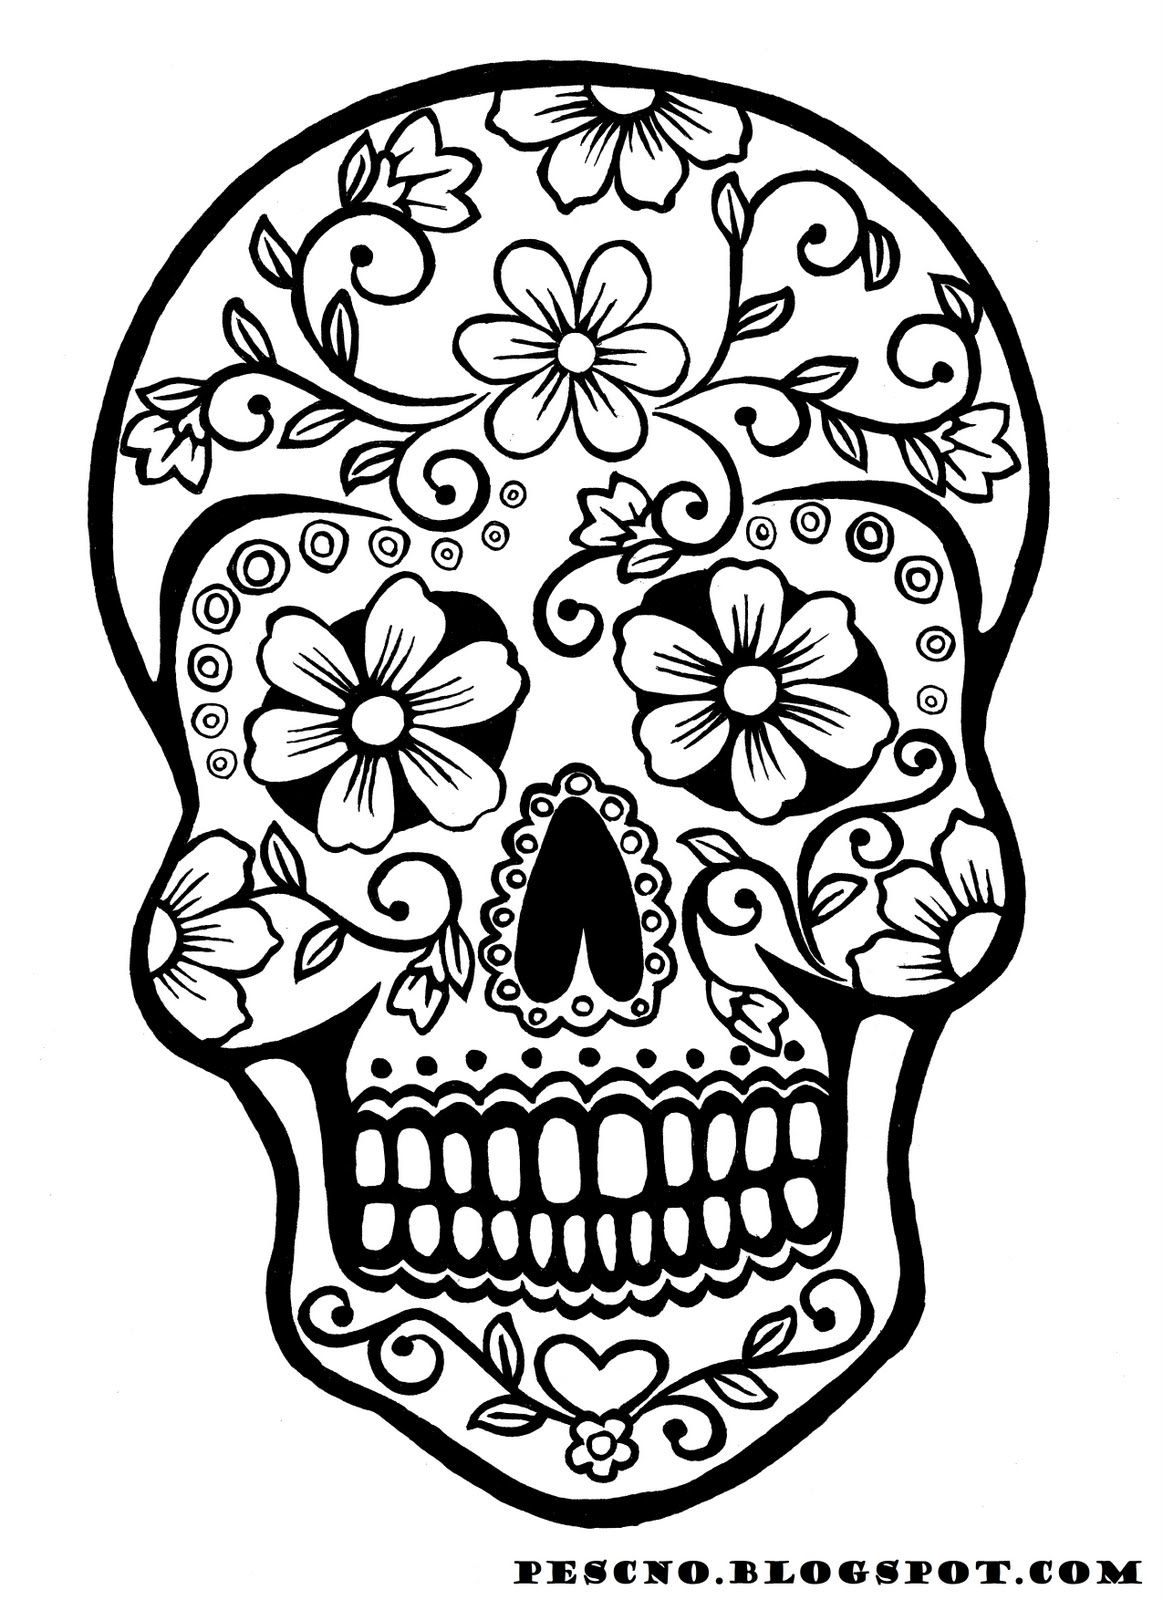 skull coloring pages to print sugar skull coloring pages | Tryk på billedet for en stor udgave  skull coloring pages to print